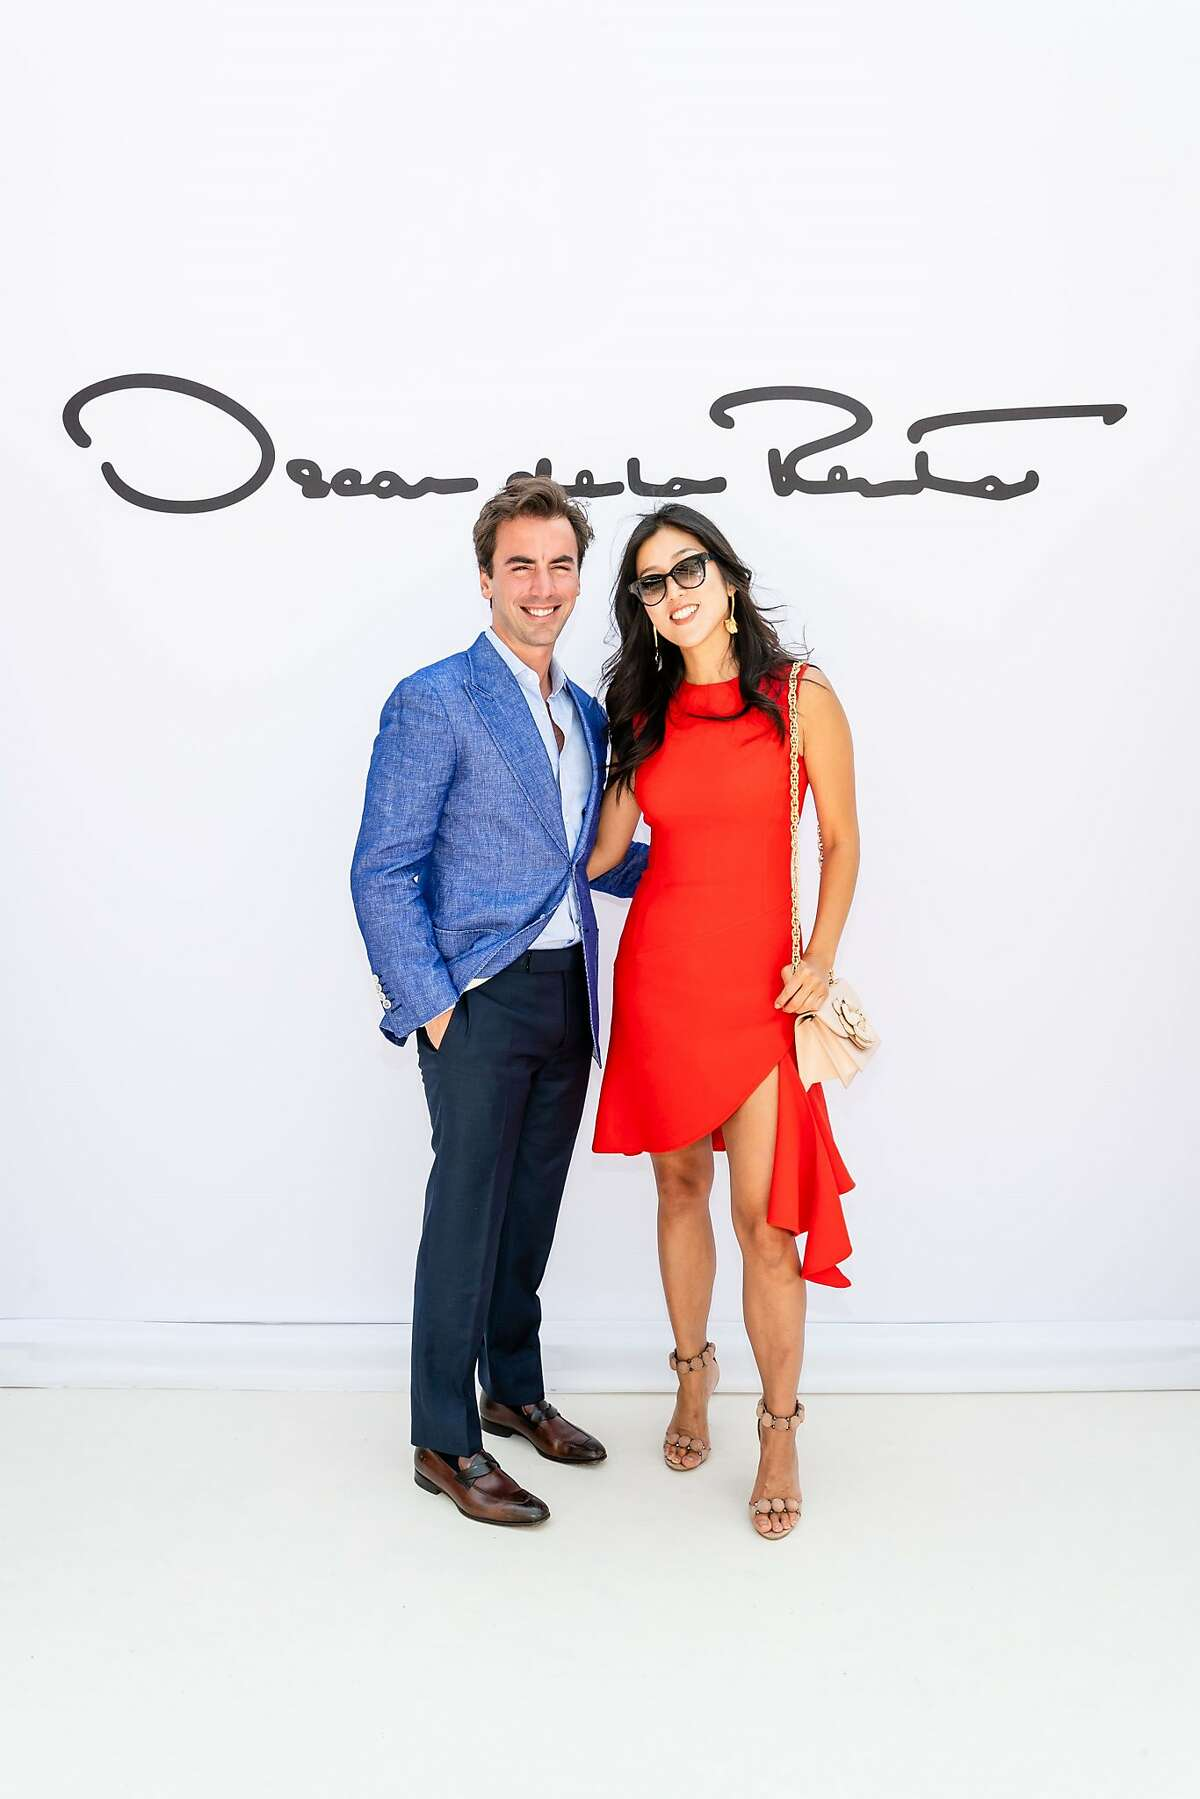 The Aug. 4 League to Save Lake Tahoe / Saks Fifth Avenue luncheon and fashion show drew�660 people�to the lakeside Schumacher Family estate and�raised more than $870,000. Oscar de la Renta Co-Creative Directors Laura Kim and Fernando Garcia (pictured) introduced the Resort 2019 collection with CEO Alex Bolen and his wife Eliza Bolen, Executive Vice President for the brand (pictured). The show featured 64 looks.